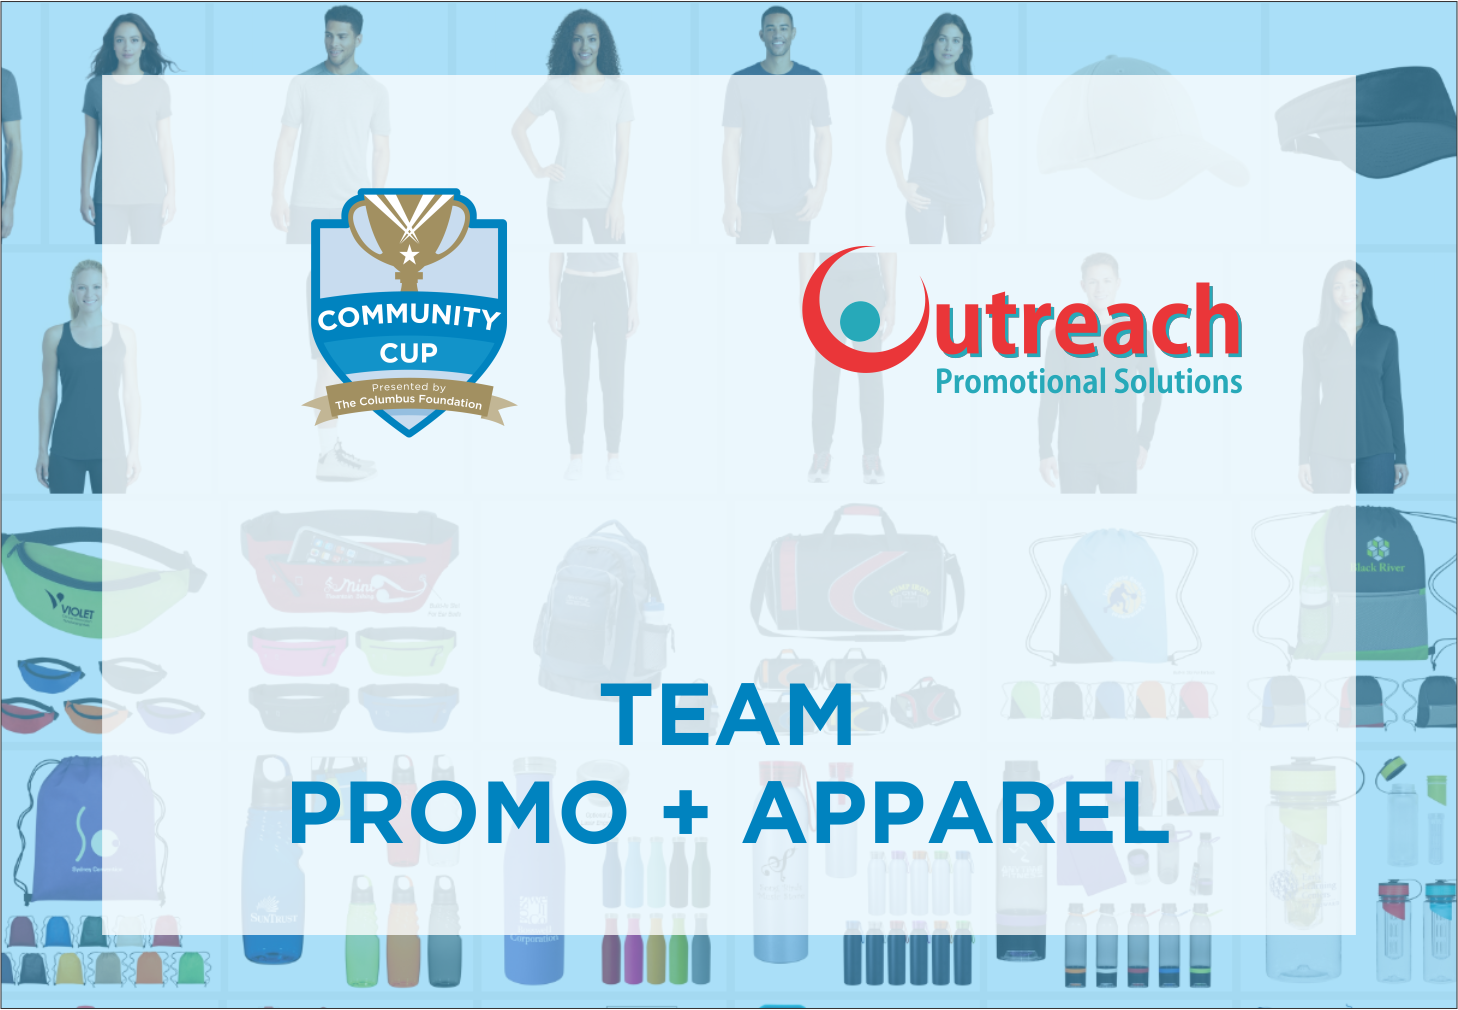 Team Promo Products And Apparel For The Community Cup